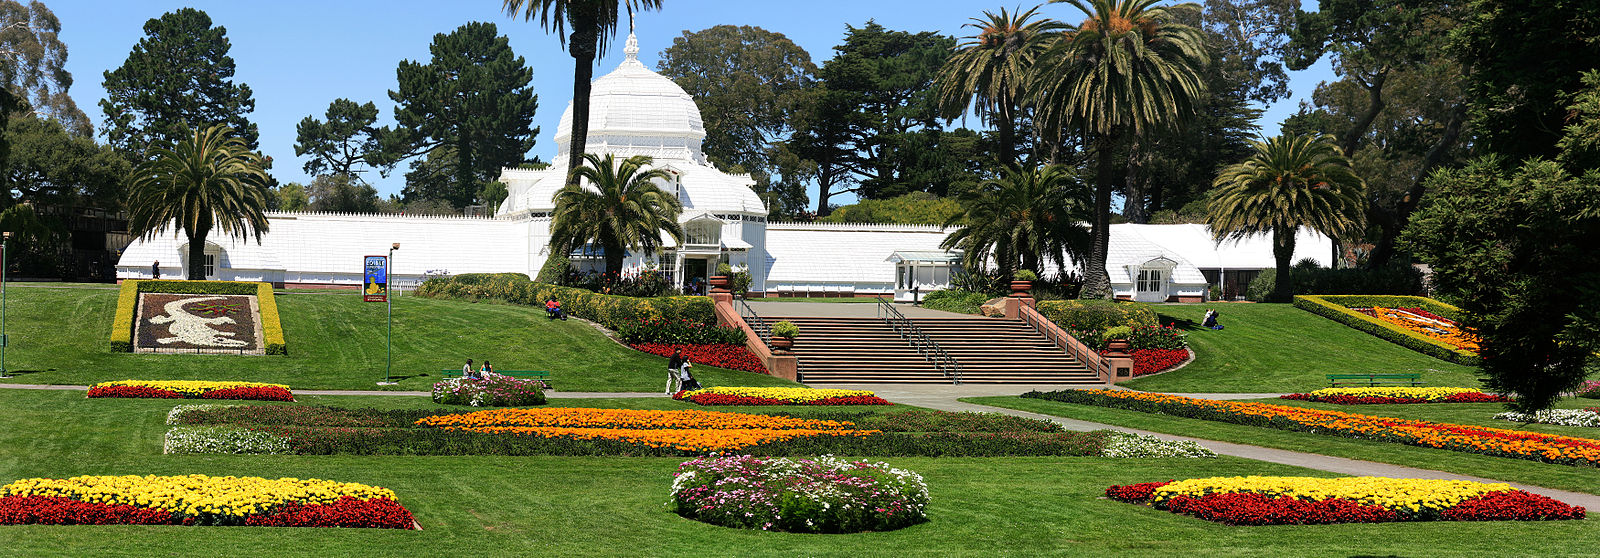 Conservatory_of_Flowers_in_Golden_Gate_Park,_San_Francisco.jpg